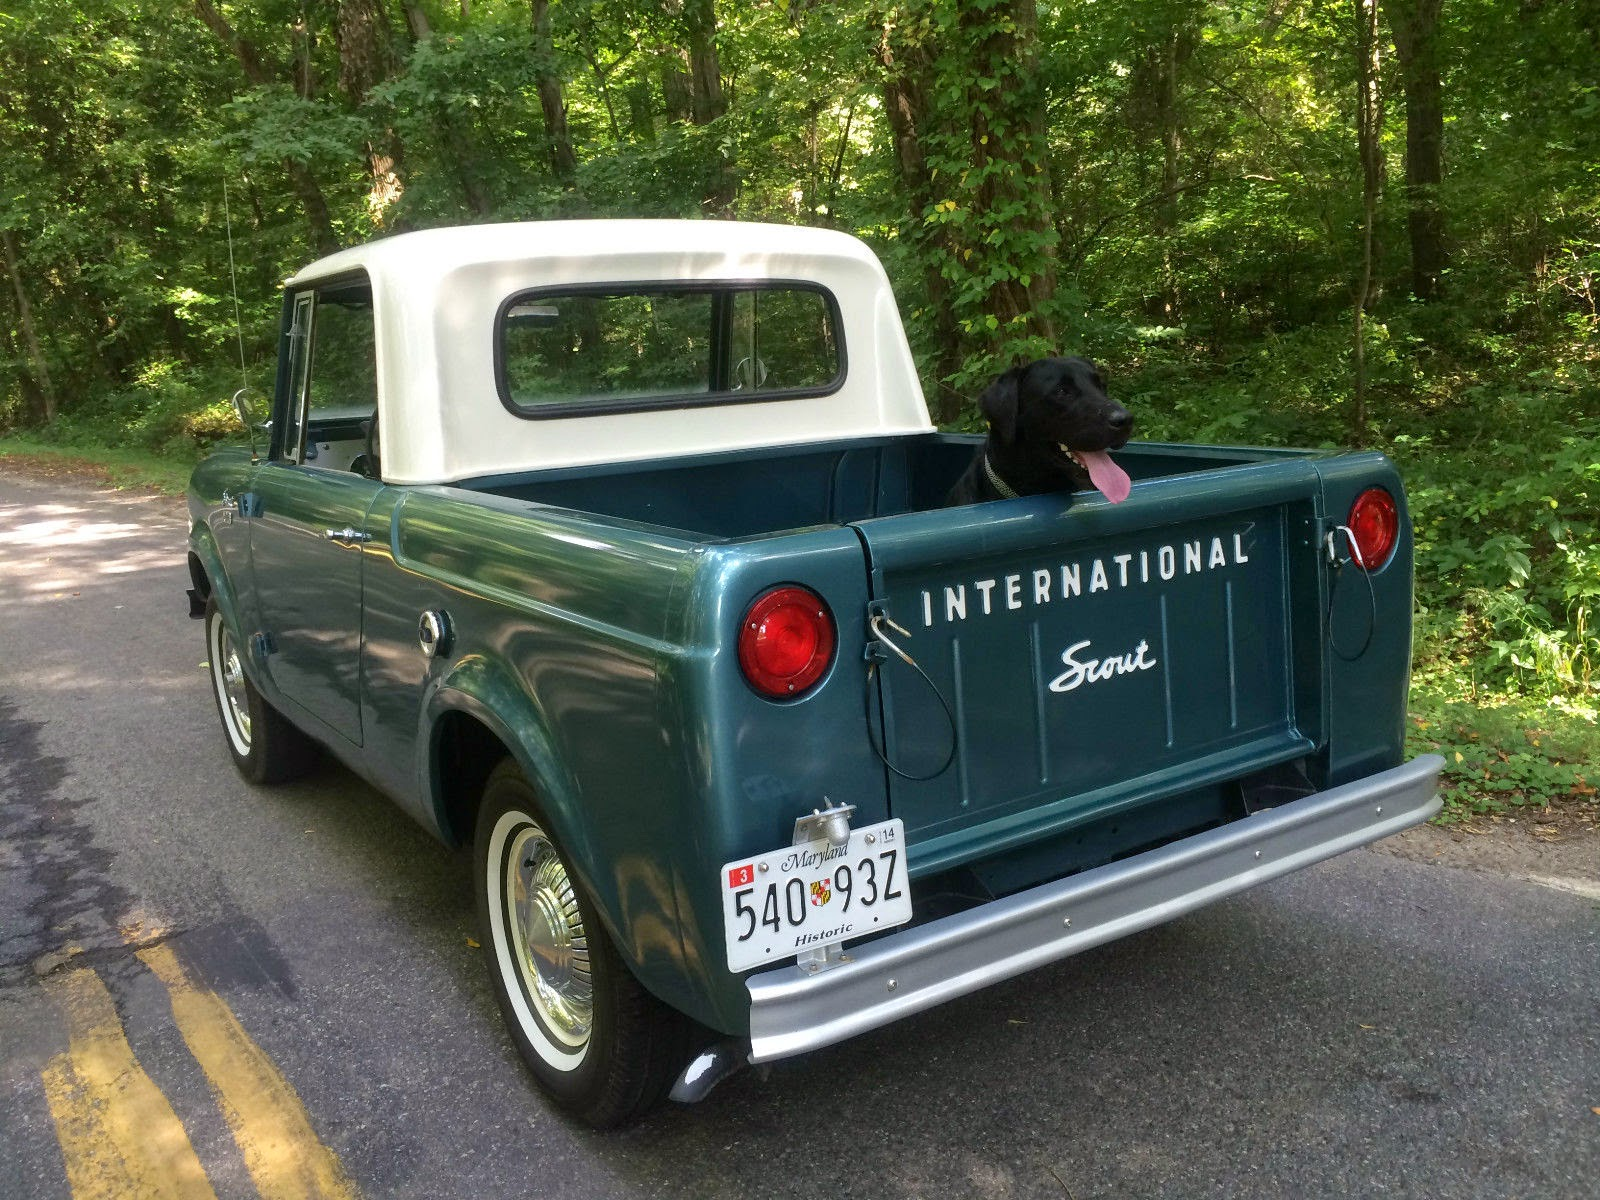 1965 International Scout 80 4x4 Pickup Truck | Auto ...